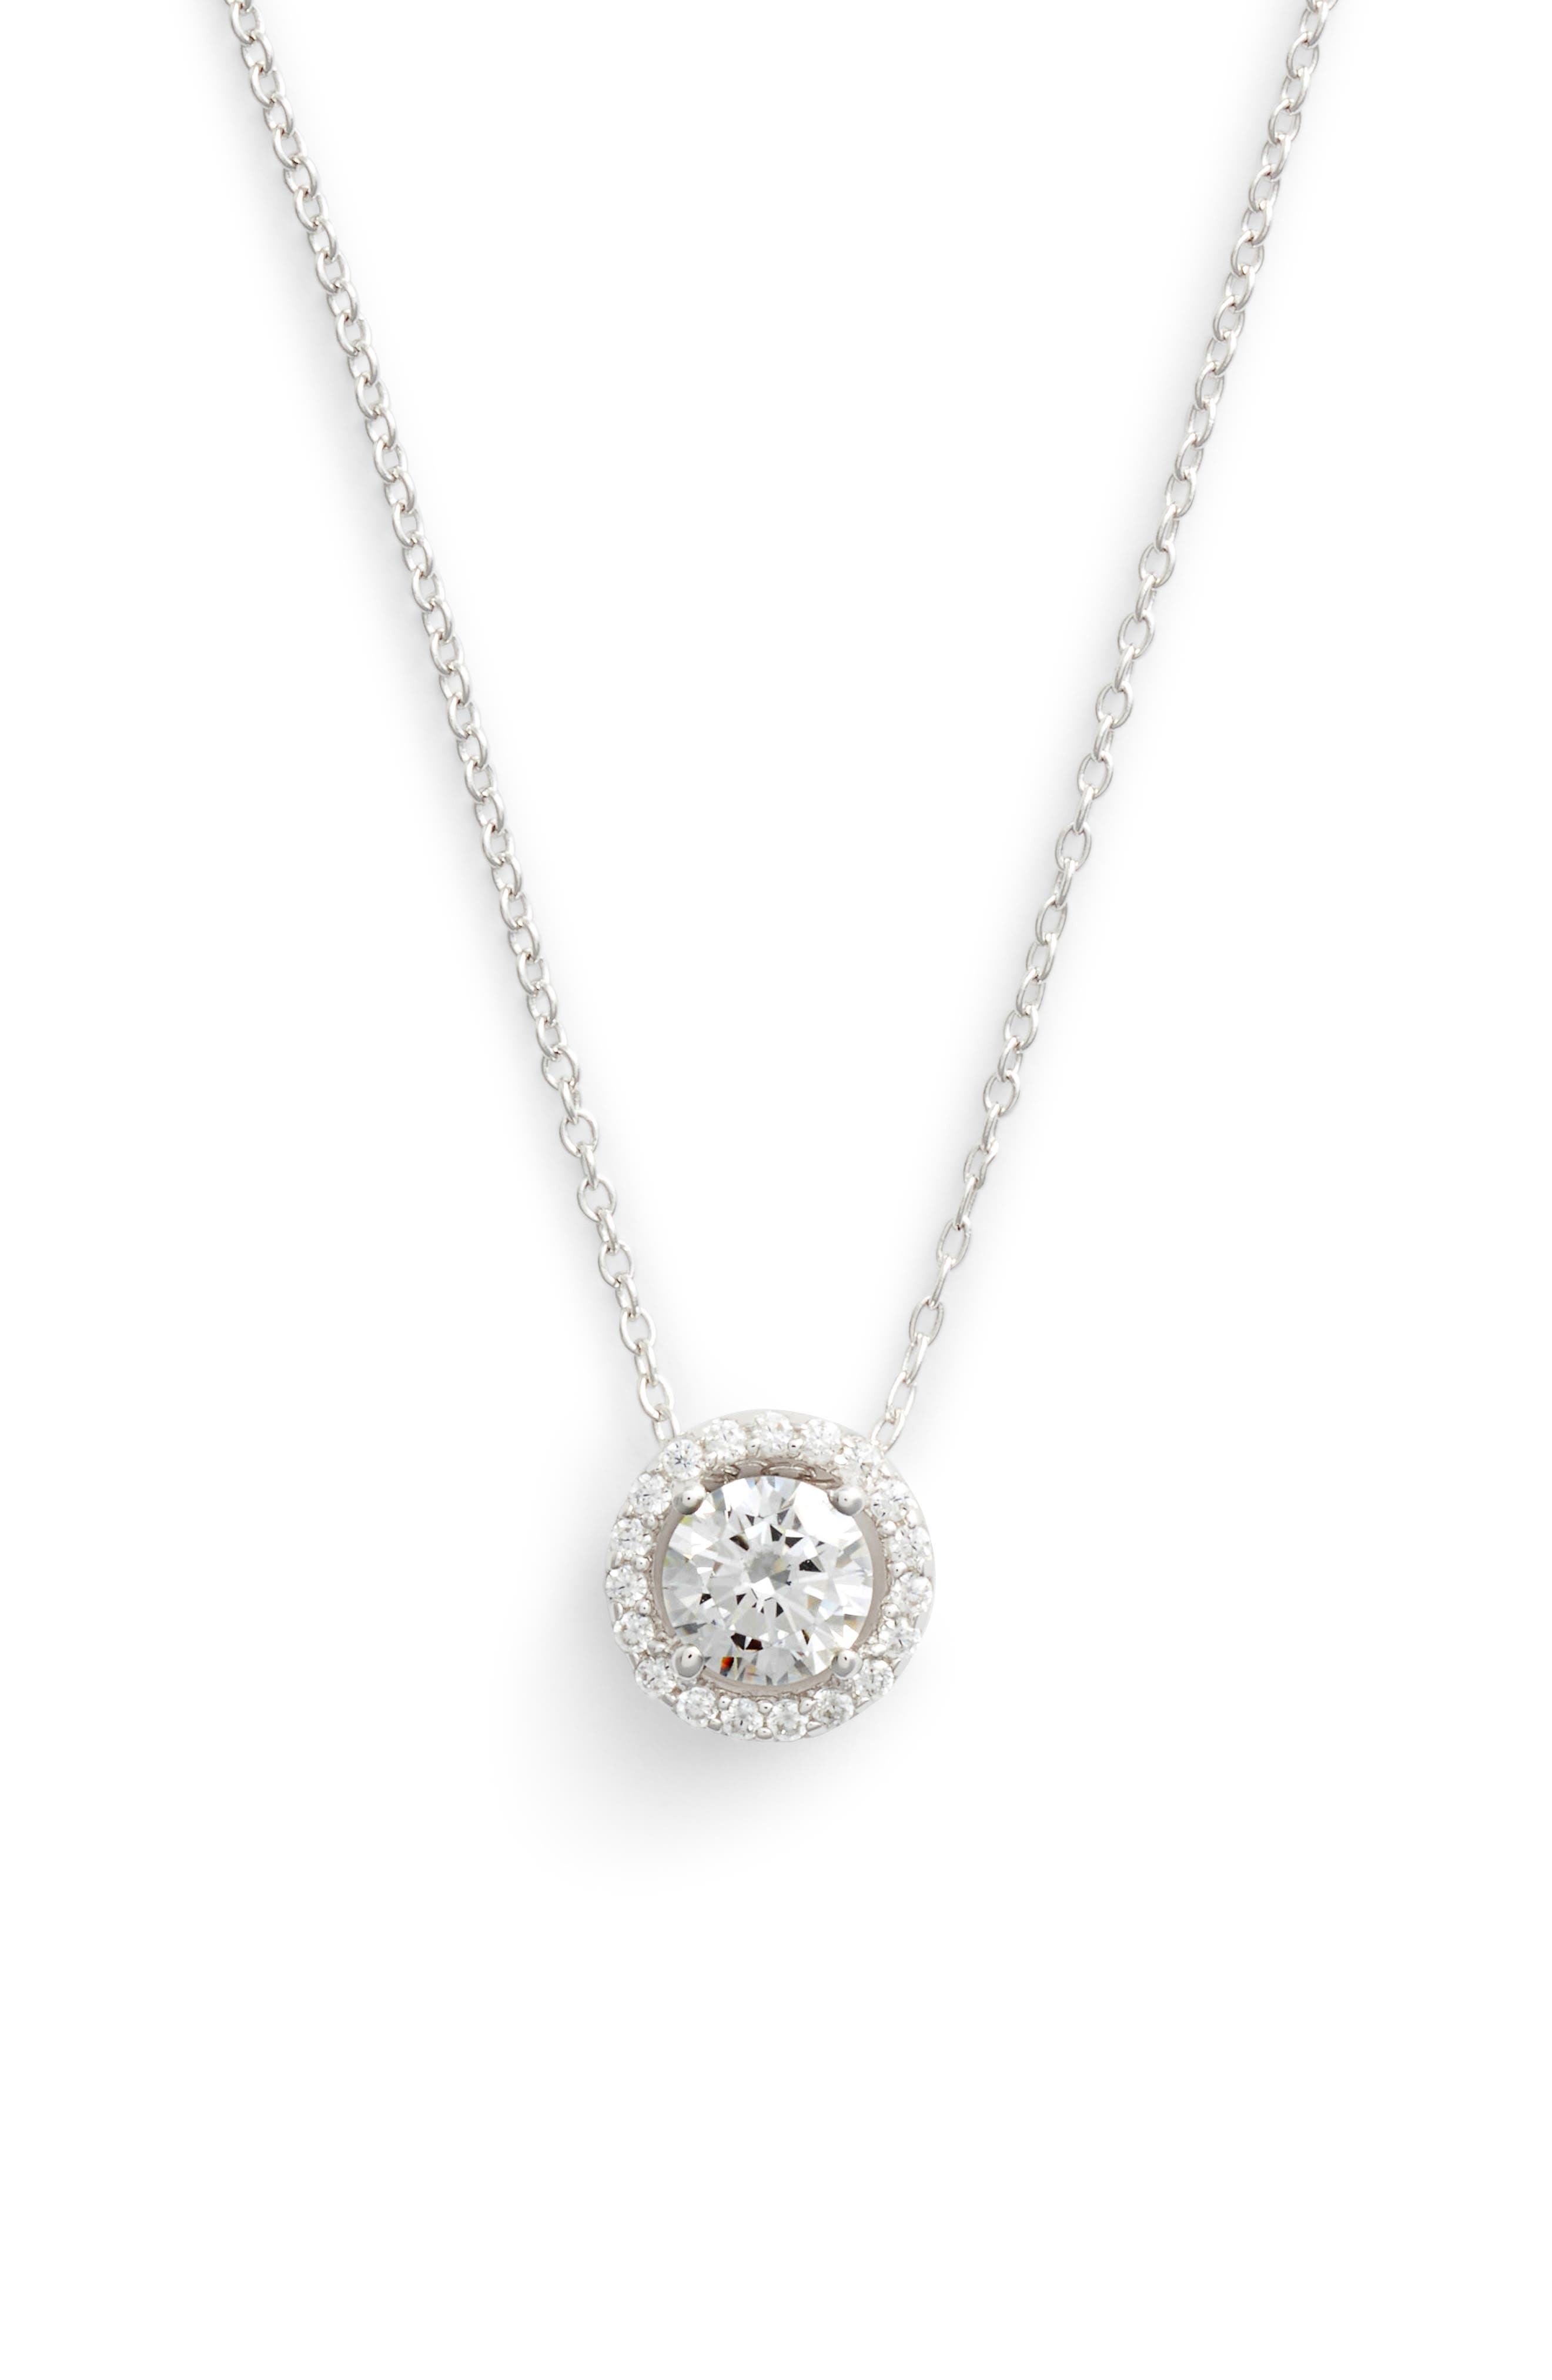 Round Halo Necklace,                         Main,                         color, Silver/ Clear